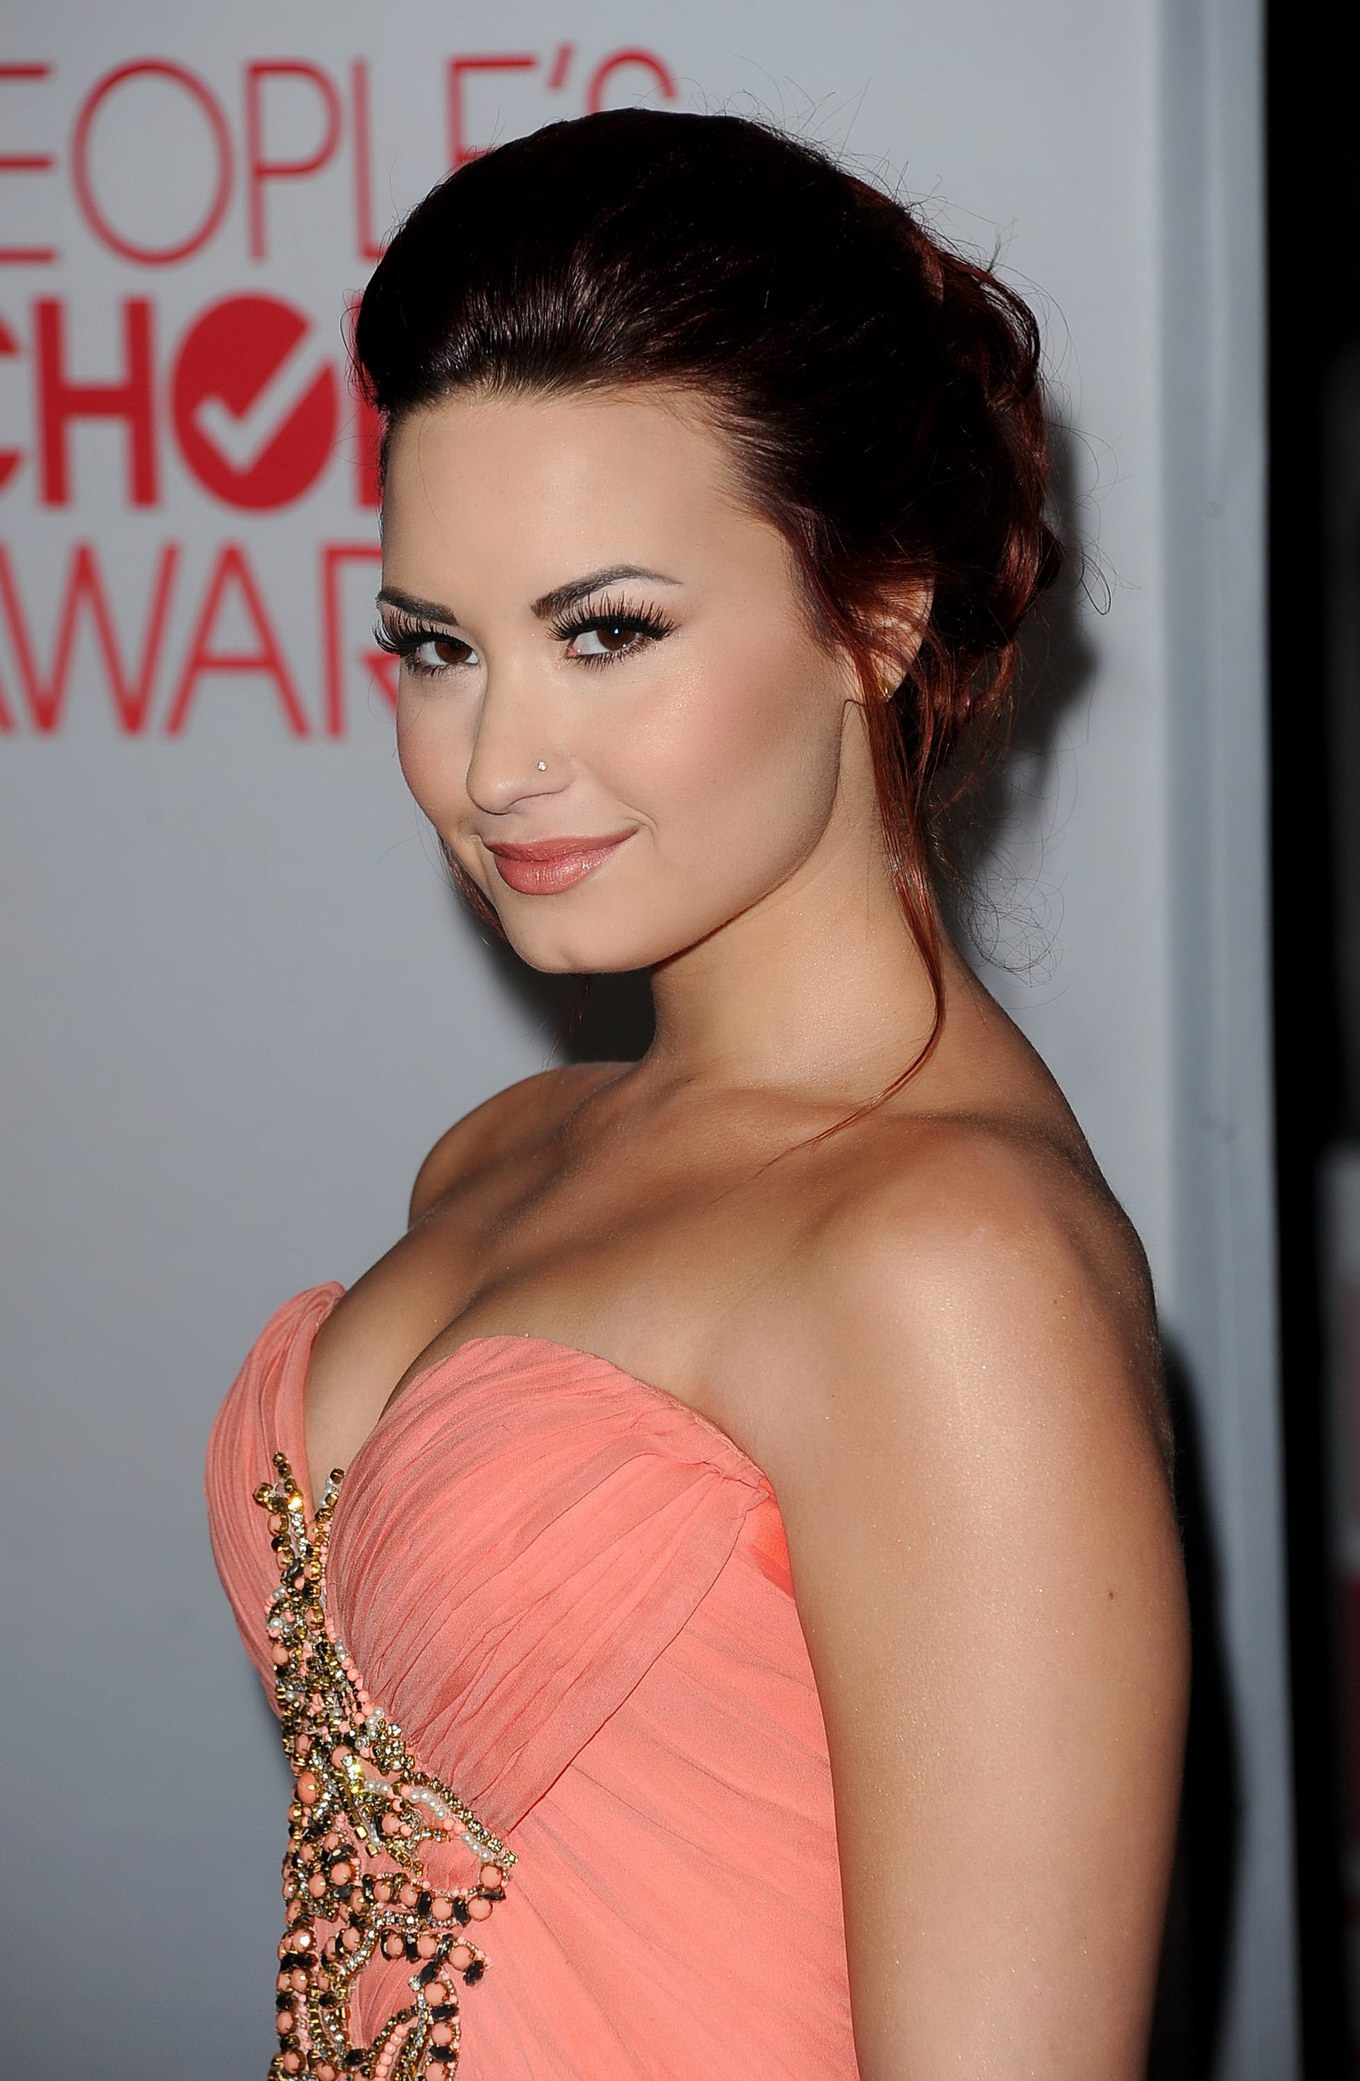 Demi Lovato Shows Cleavage Wearing Strapless Dress At 2012